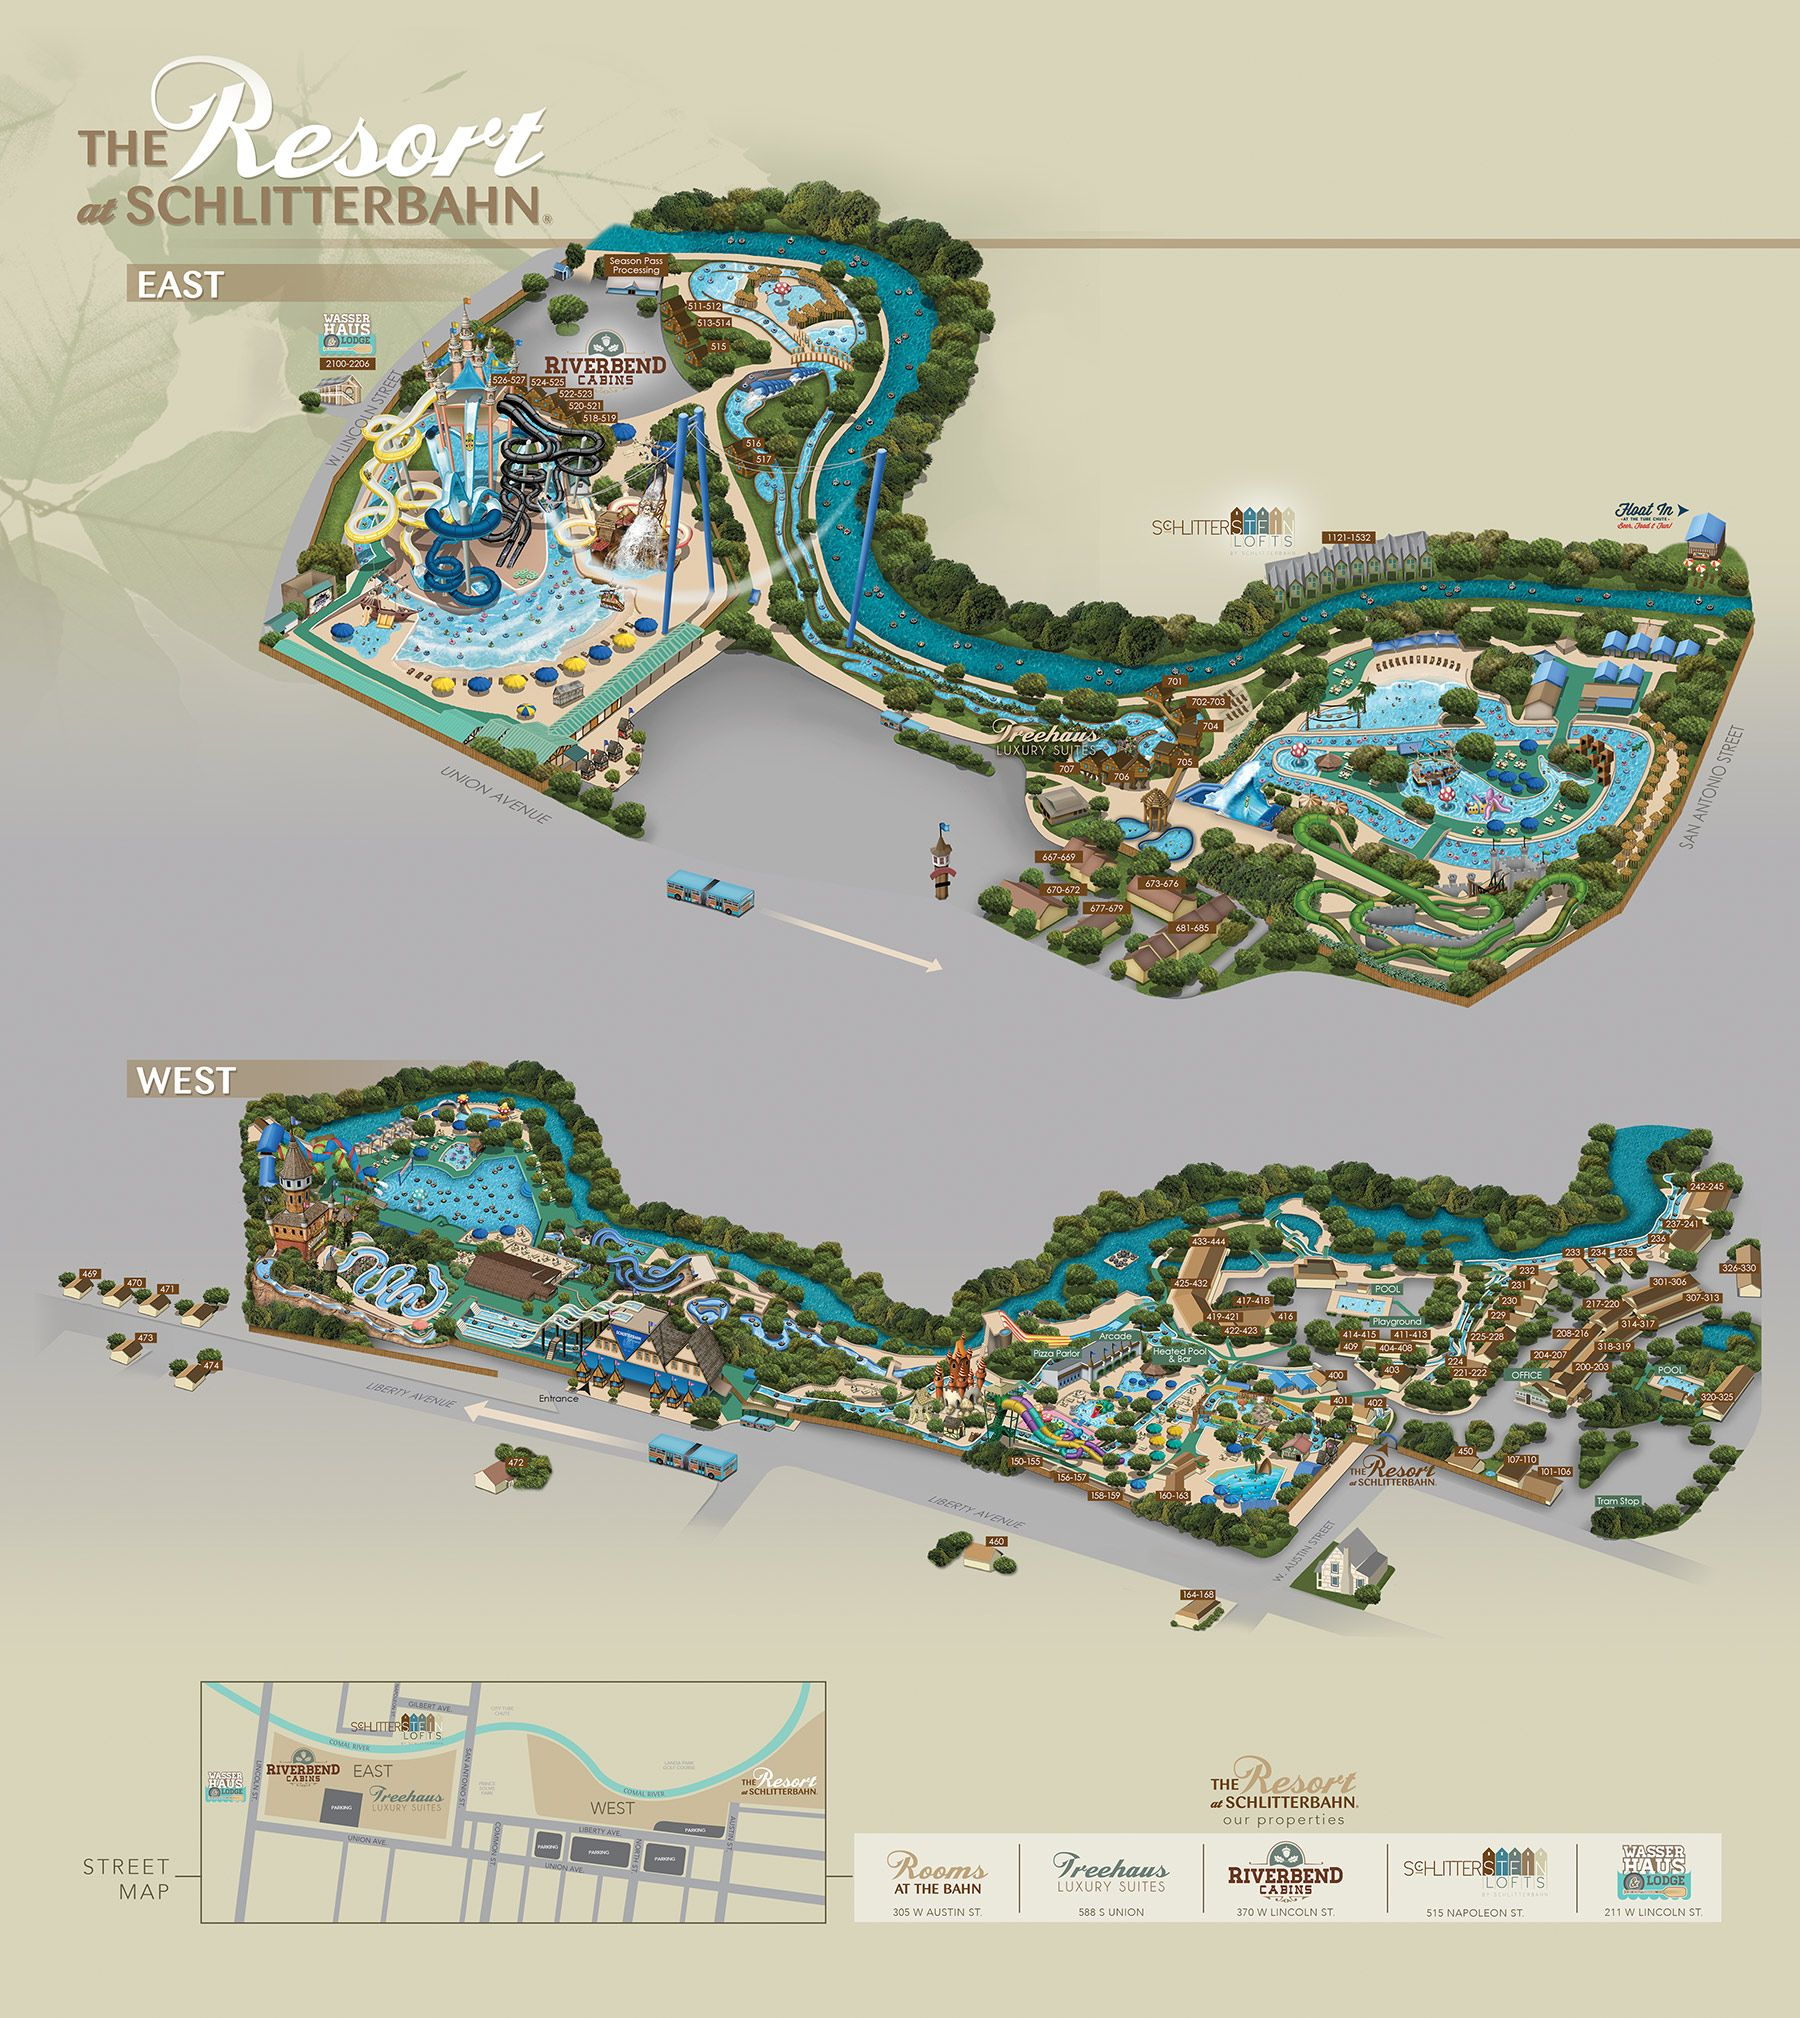 New Braunfels Schlitterbahn Resort Map We stayed